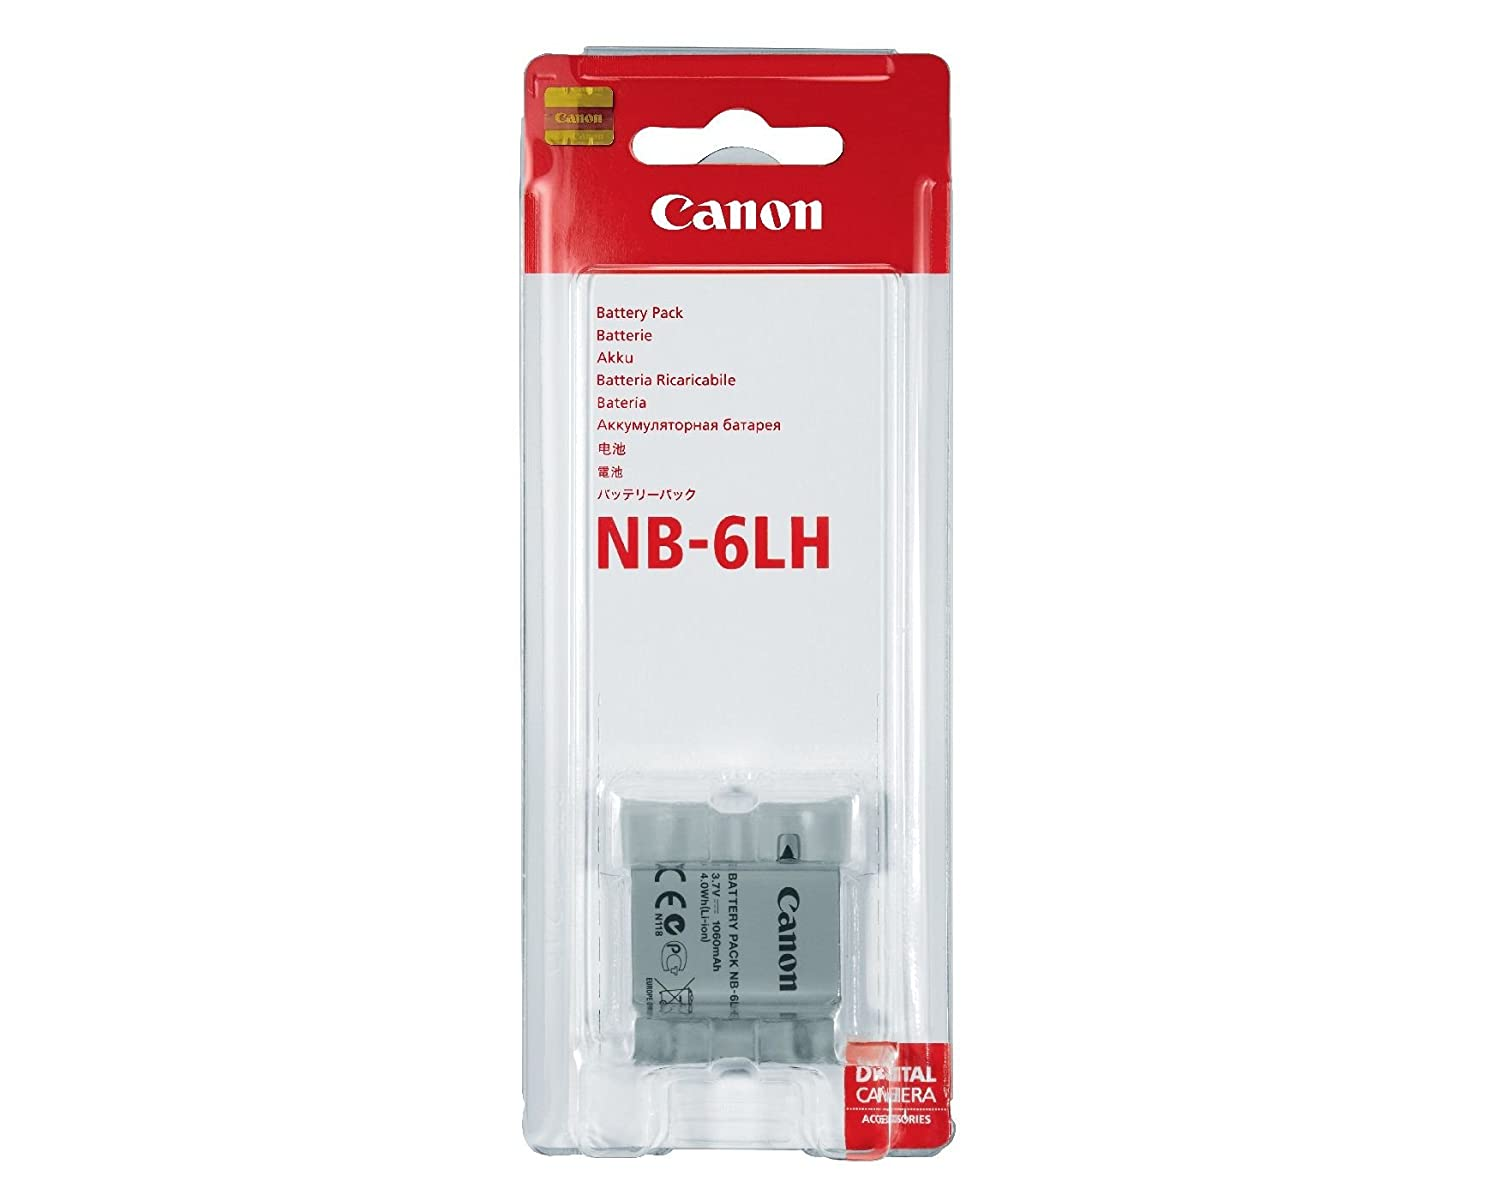 Amazoncom Canon Battery Pack NB6LH Digital Camera Batteries